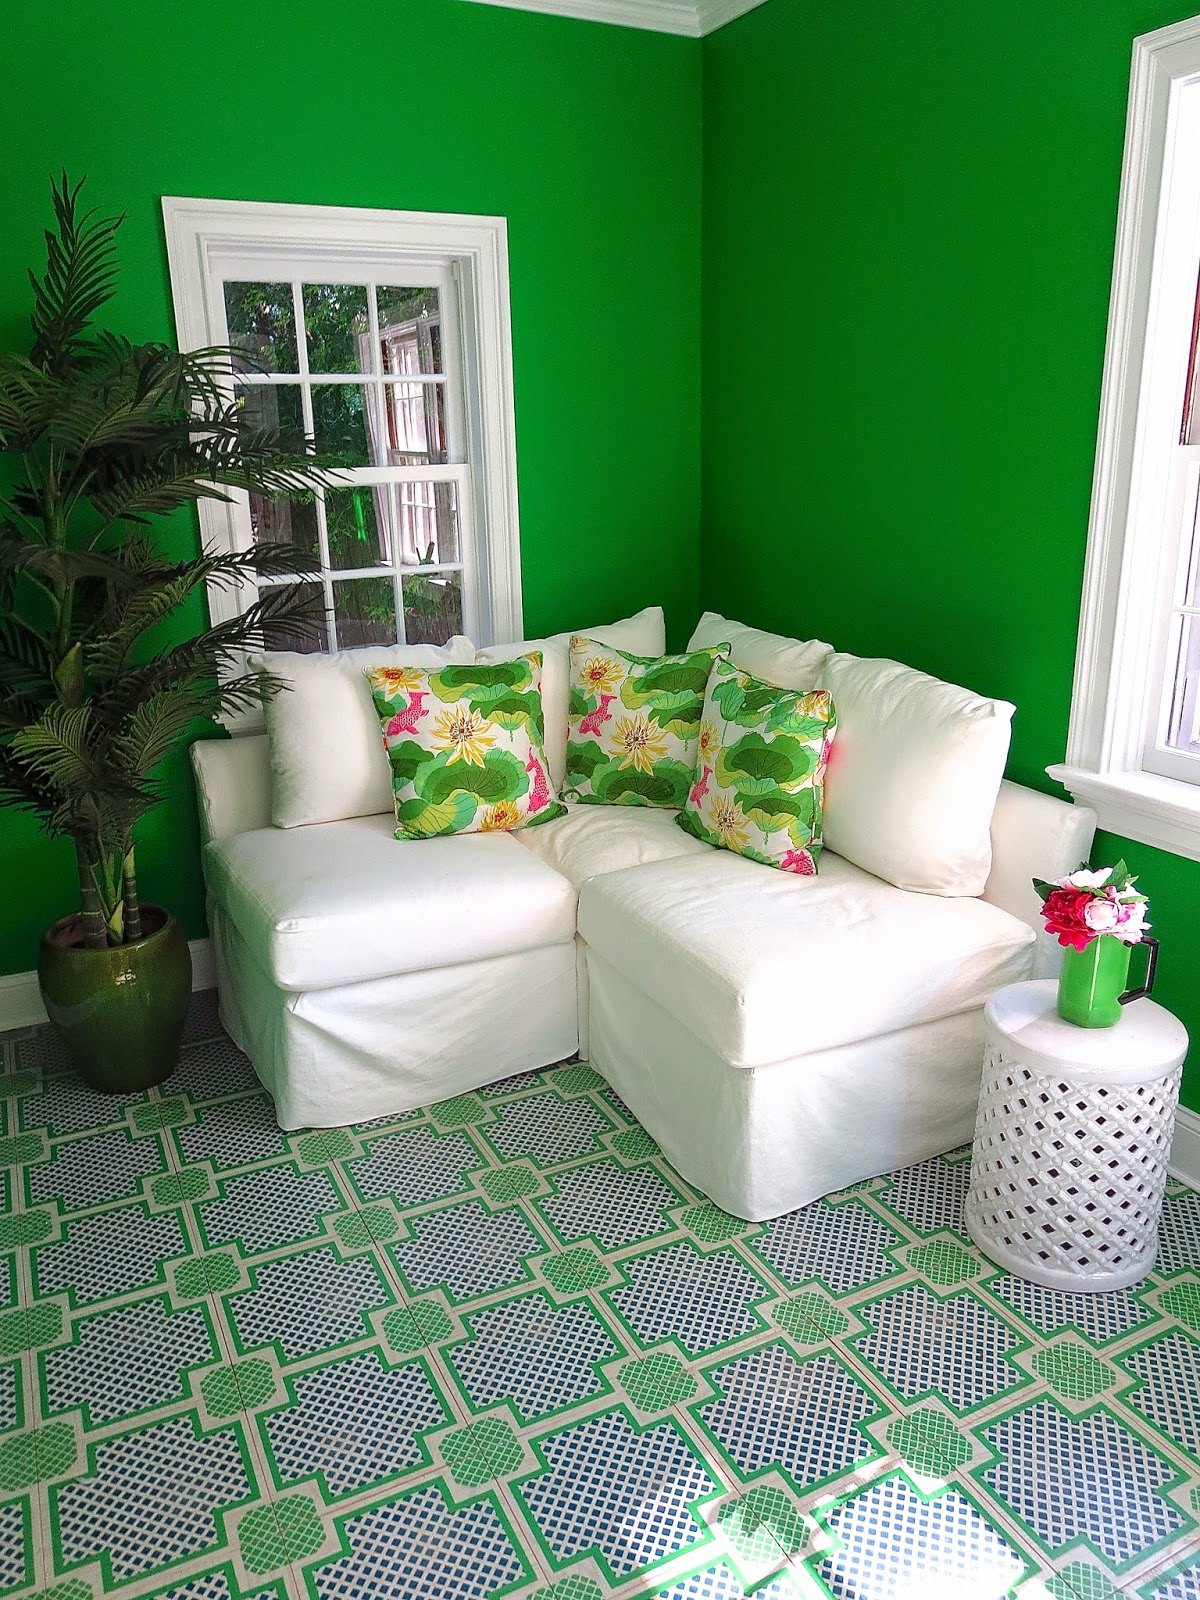 Cococozy am 39 s pretty little green room east hampton decor - Pretty green rooms ...